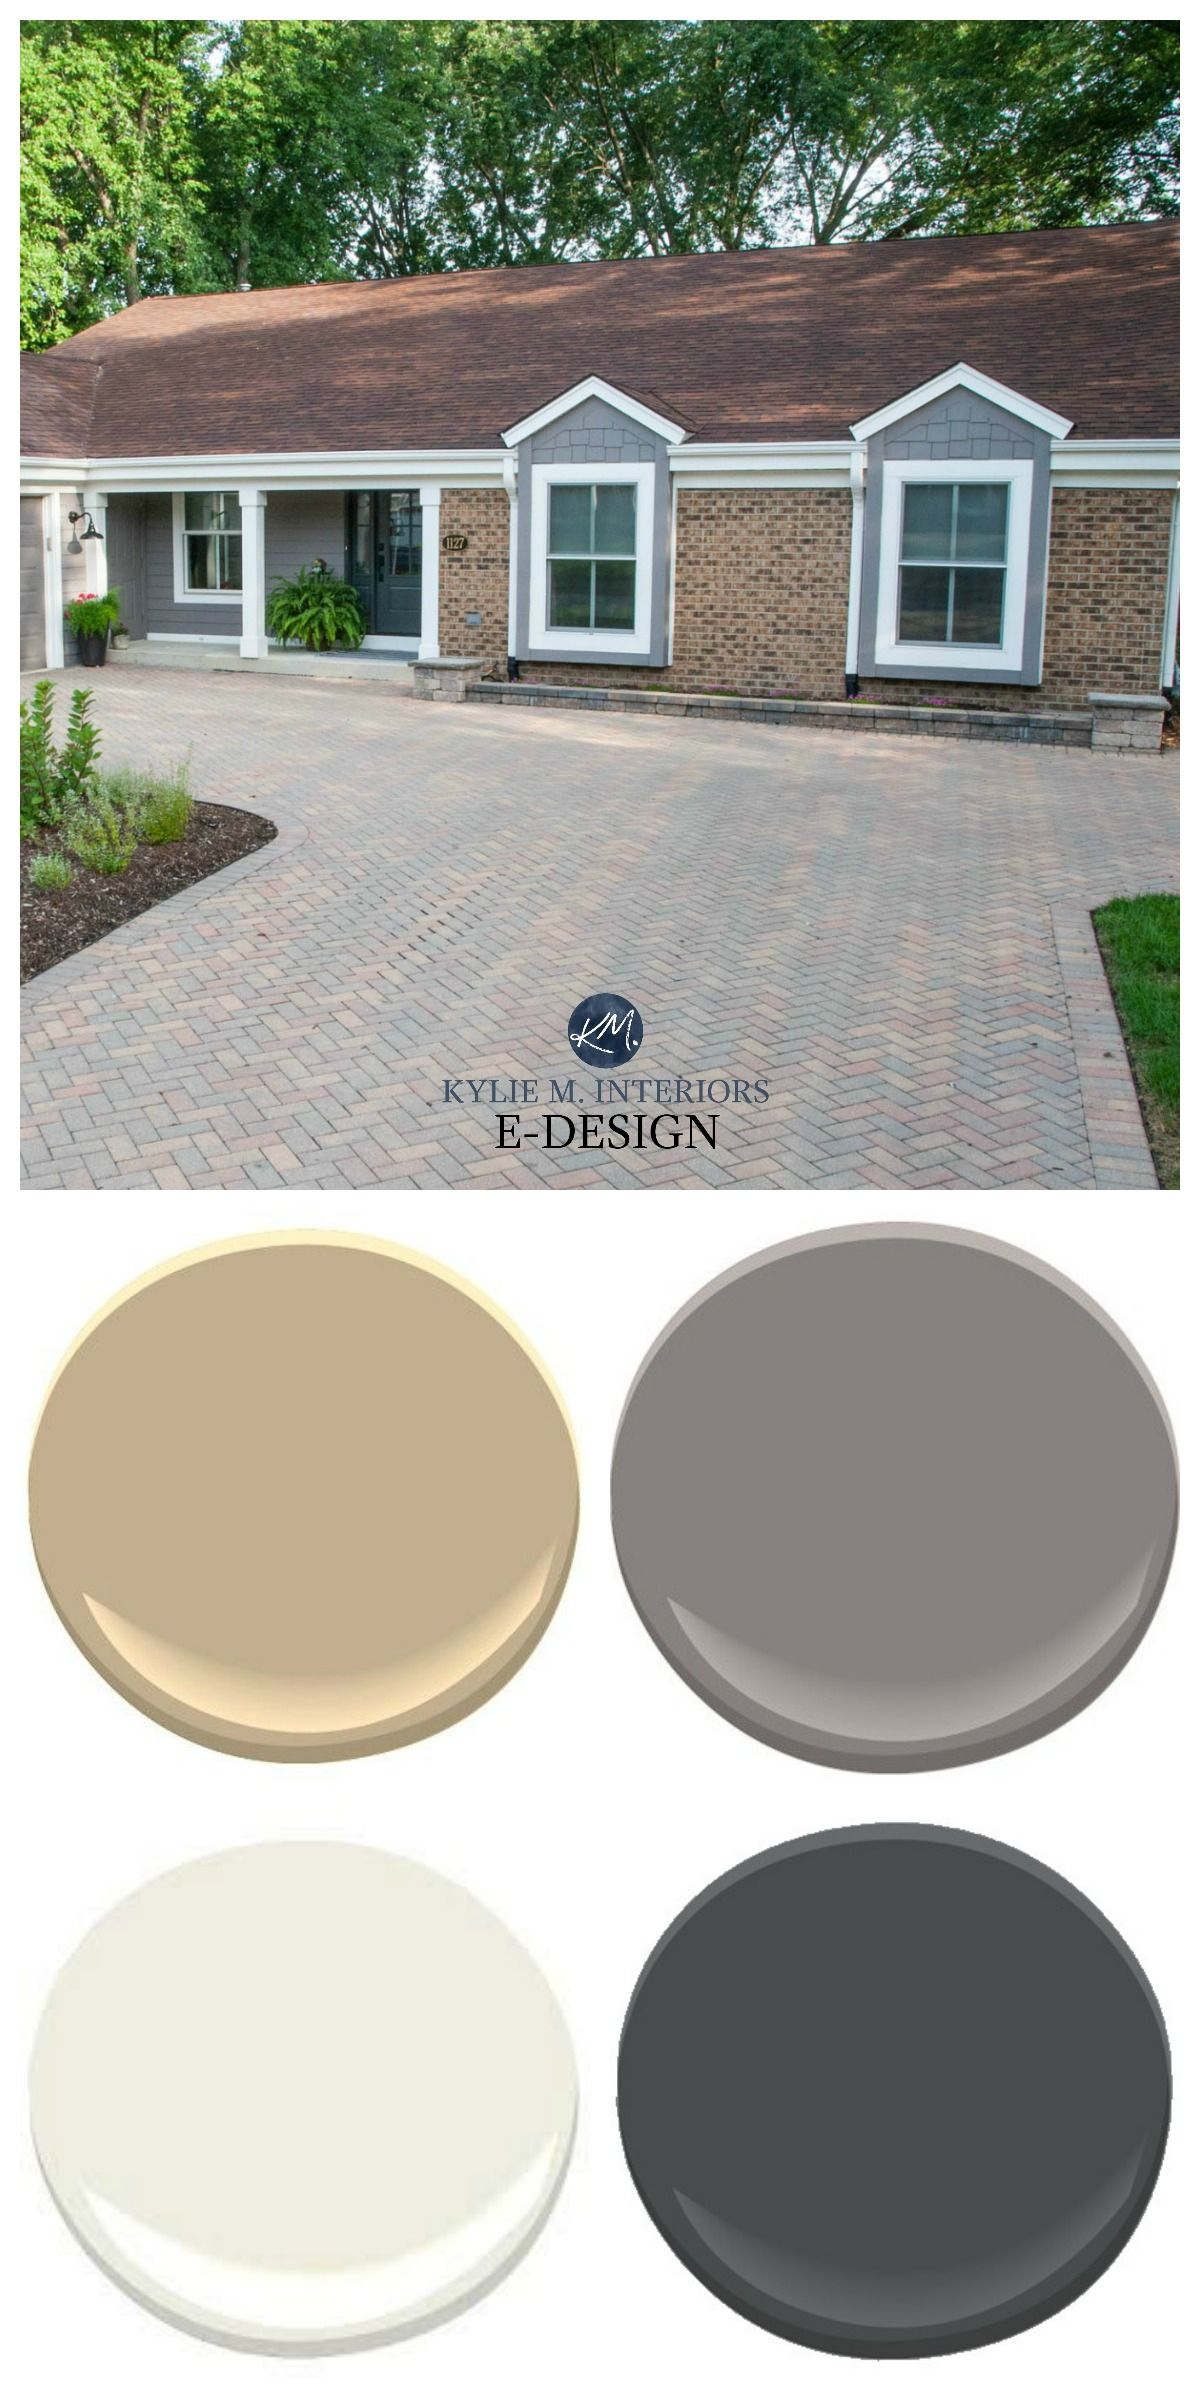 Brick Exterior With Driveway Rancher Kylie M Interiors Edesign Warm Gray Off White And Black Sh Exterior House Colors Brick Exterior House Exterior Brick